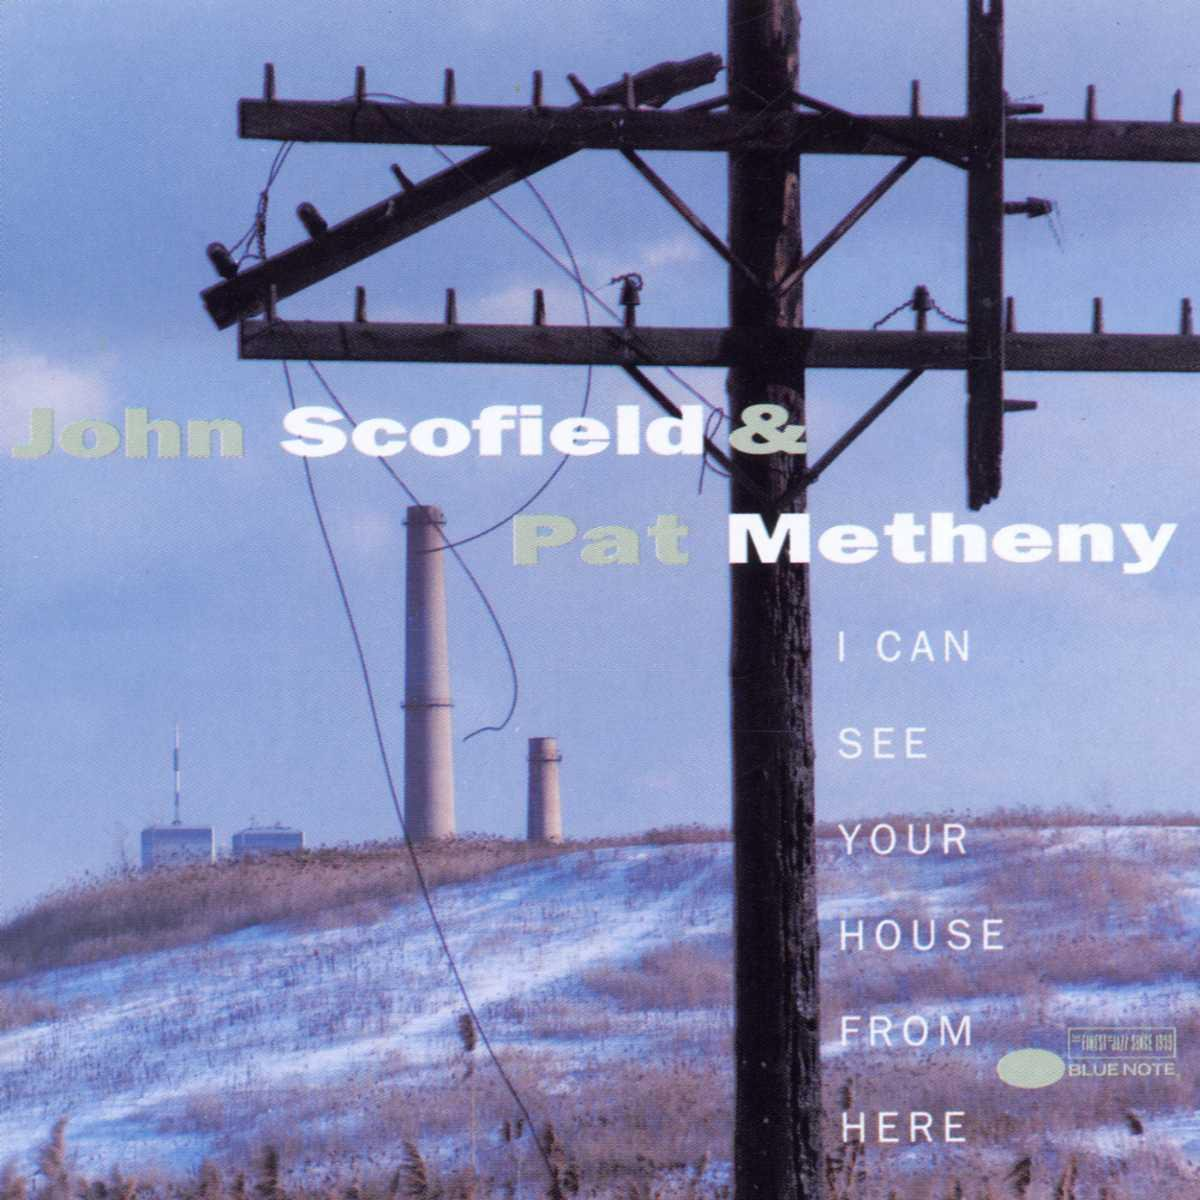 I Can See Your House From Here - John Scofield